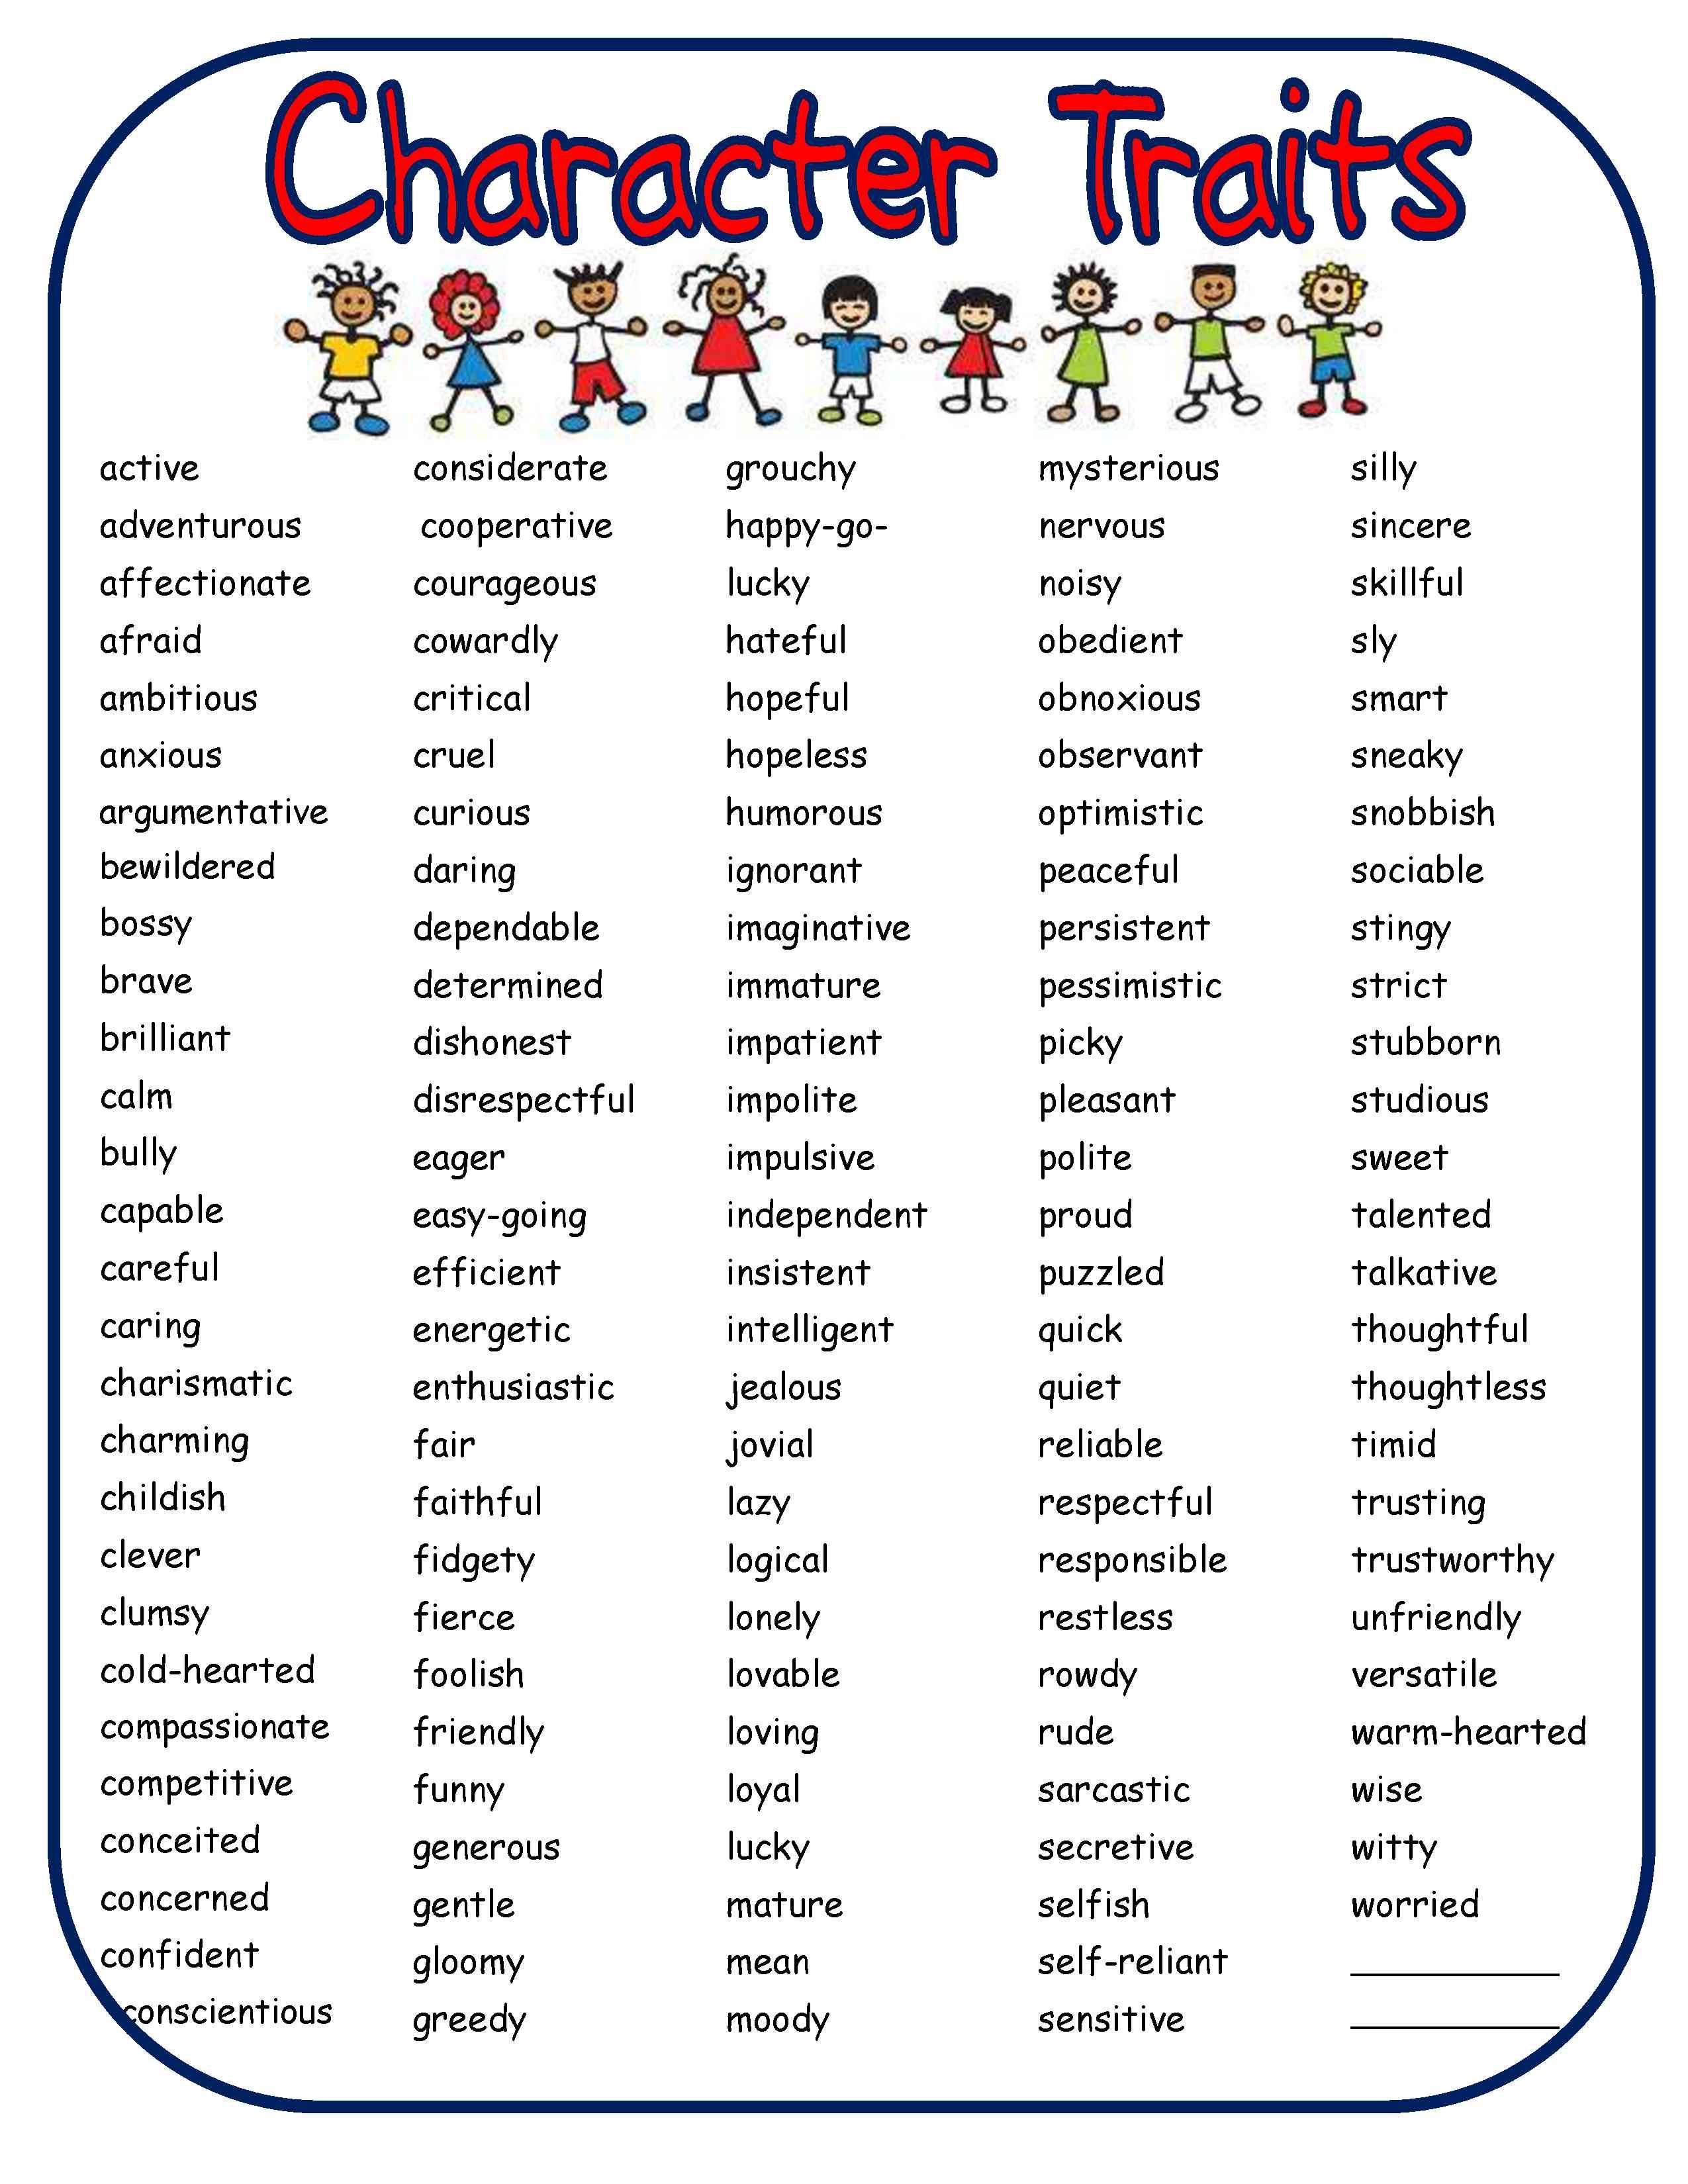 Free Worksheet Character Traits Worksheet 1000 images about character traits on pinterest grinch common cores and literary characters